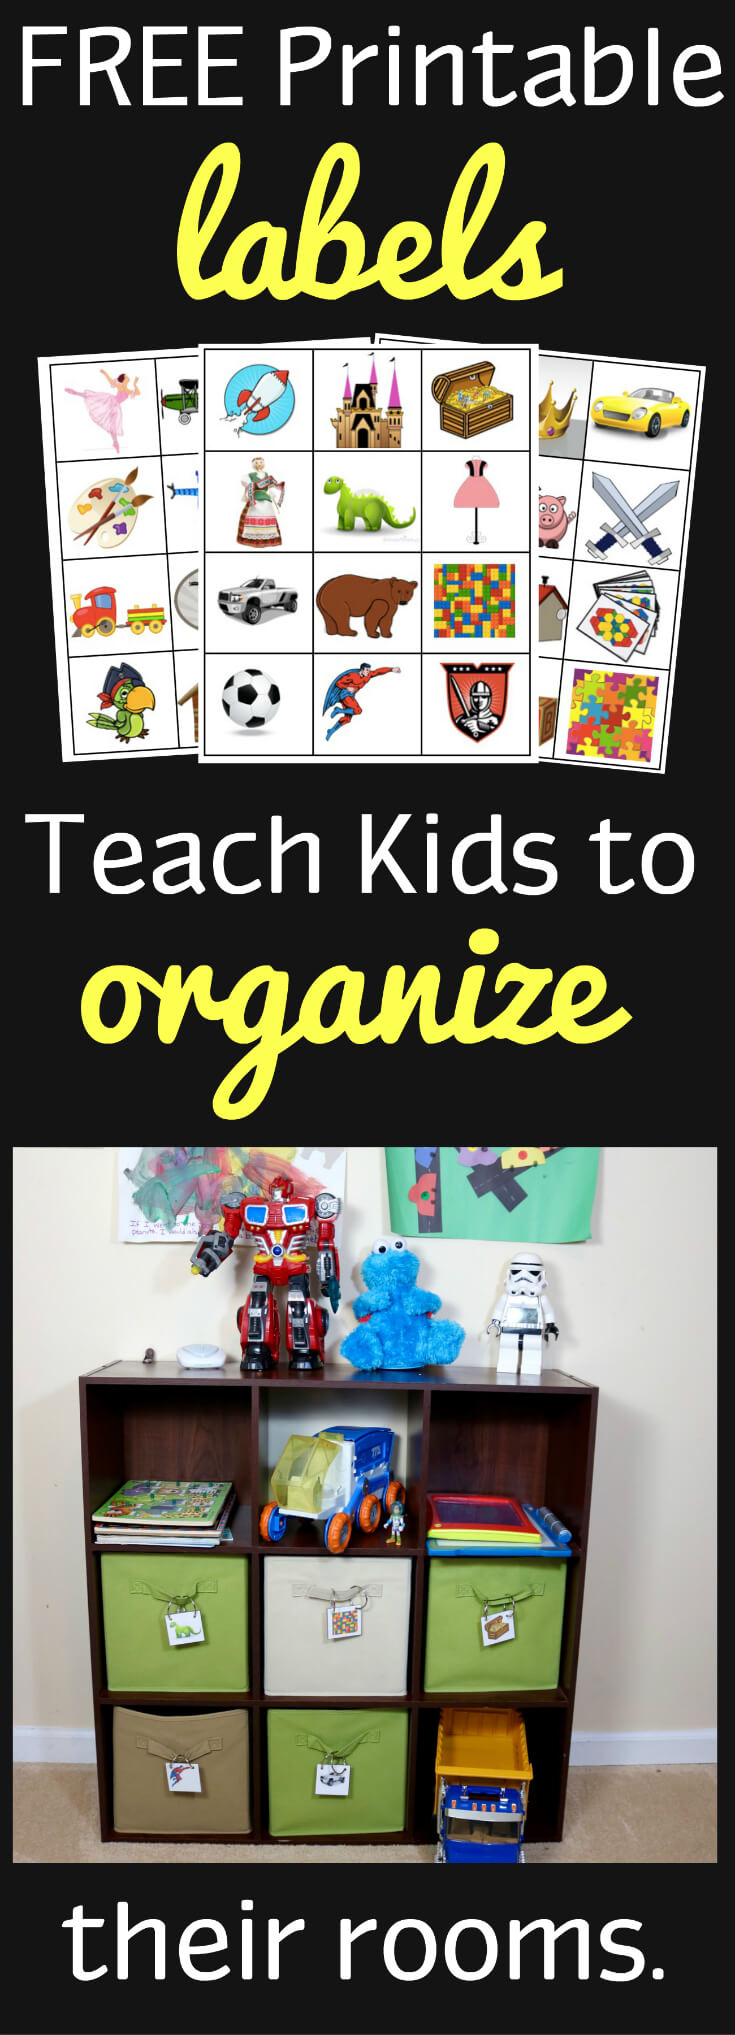 36 Labels to Organize Kids Rooms from HappyandBlessedHome.com